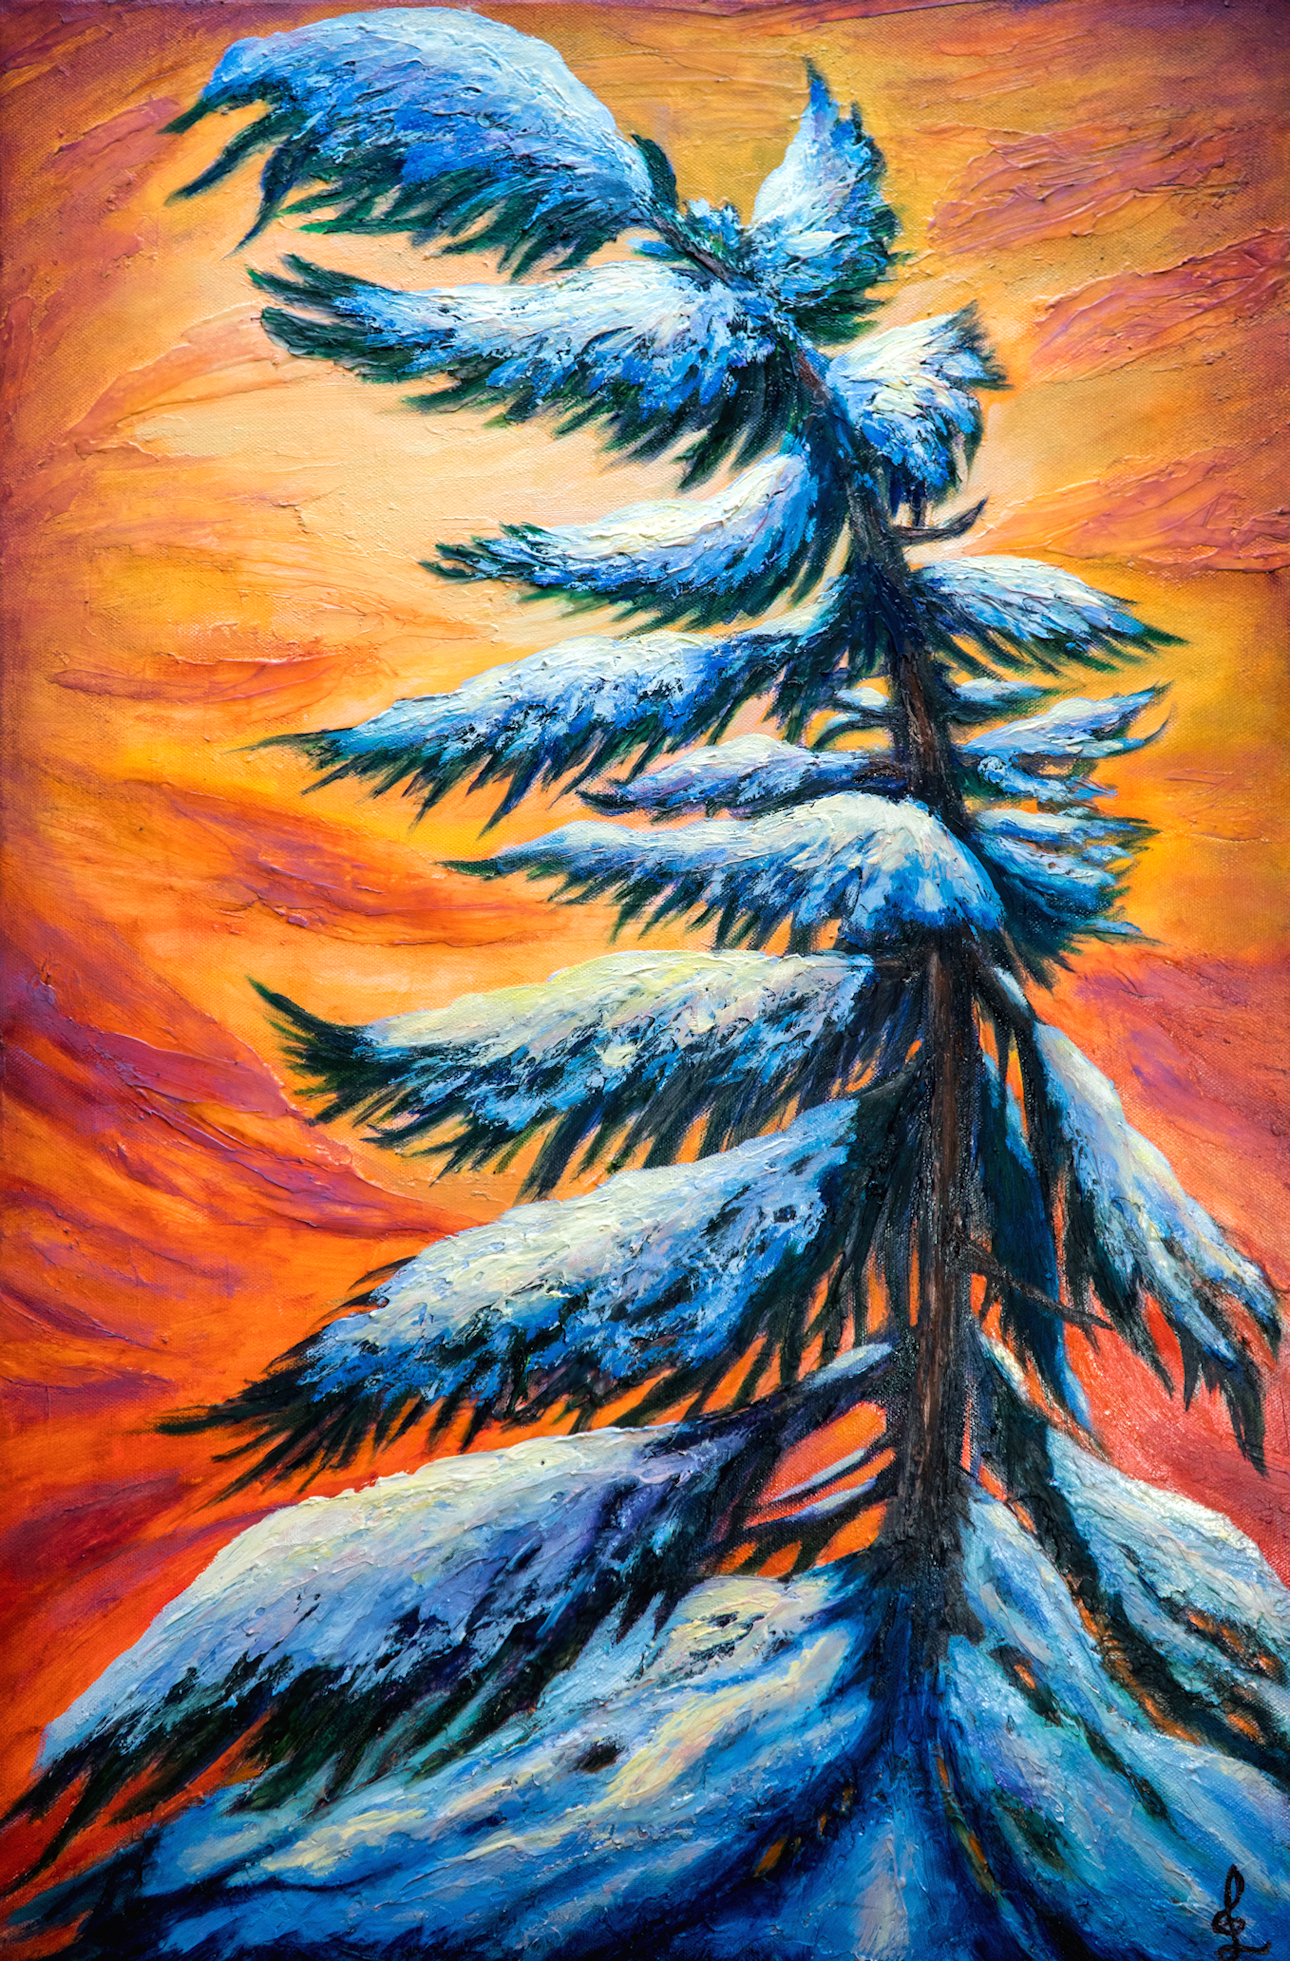 Pine tree Winter portrait artwork by Lilia Dalamangas - art listed for sale on Artplode